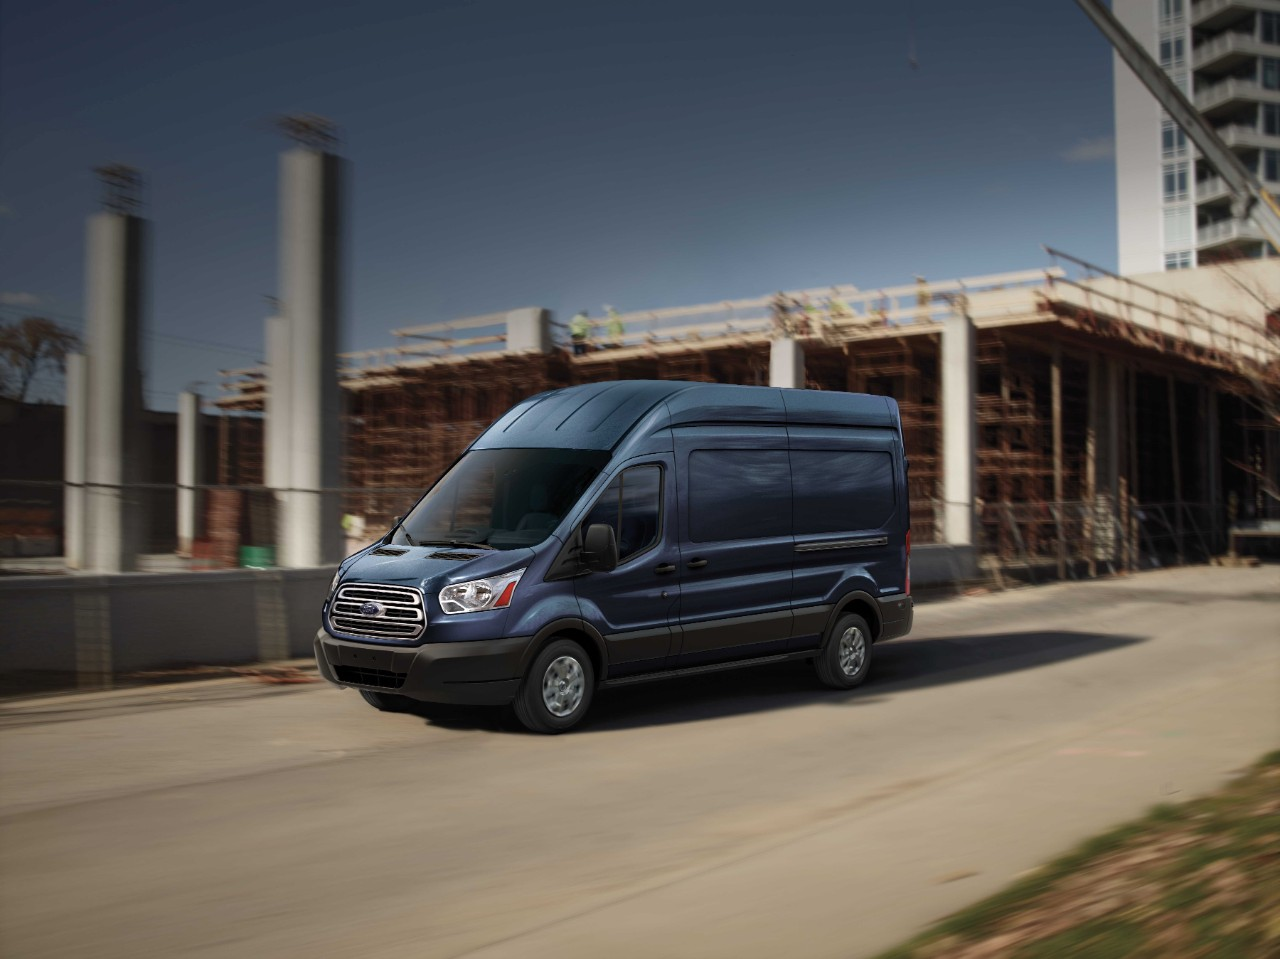 Ford Recalls Transit Vans for Driveshaft Issue